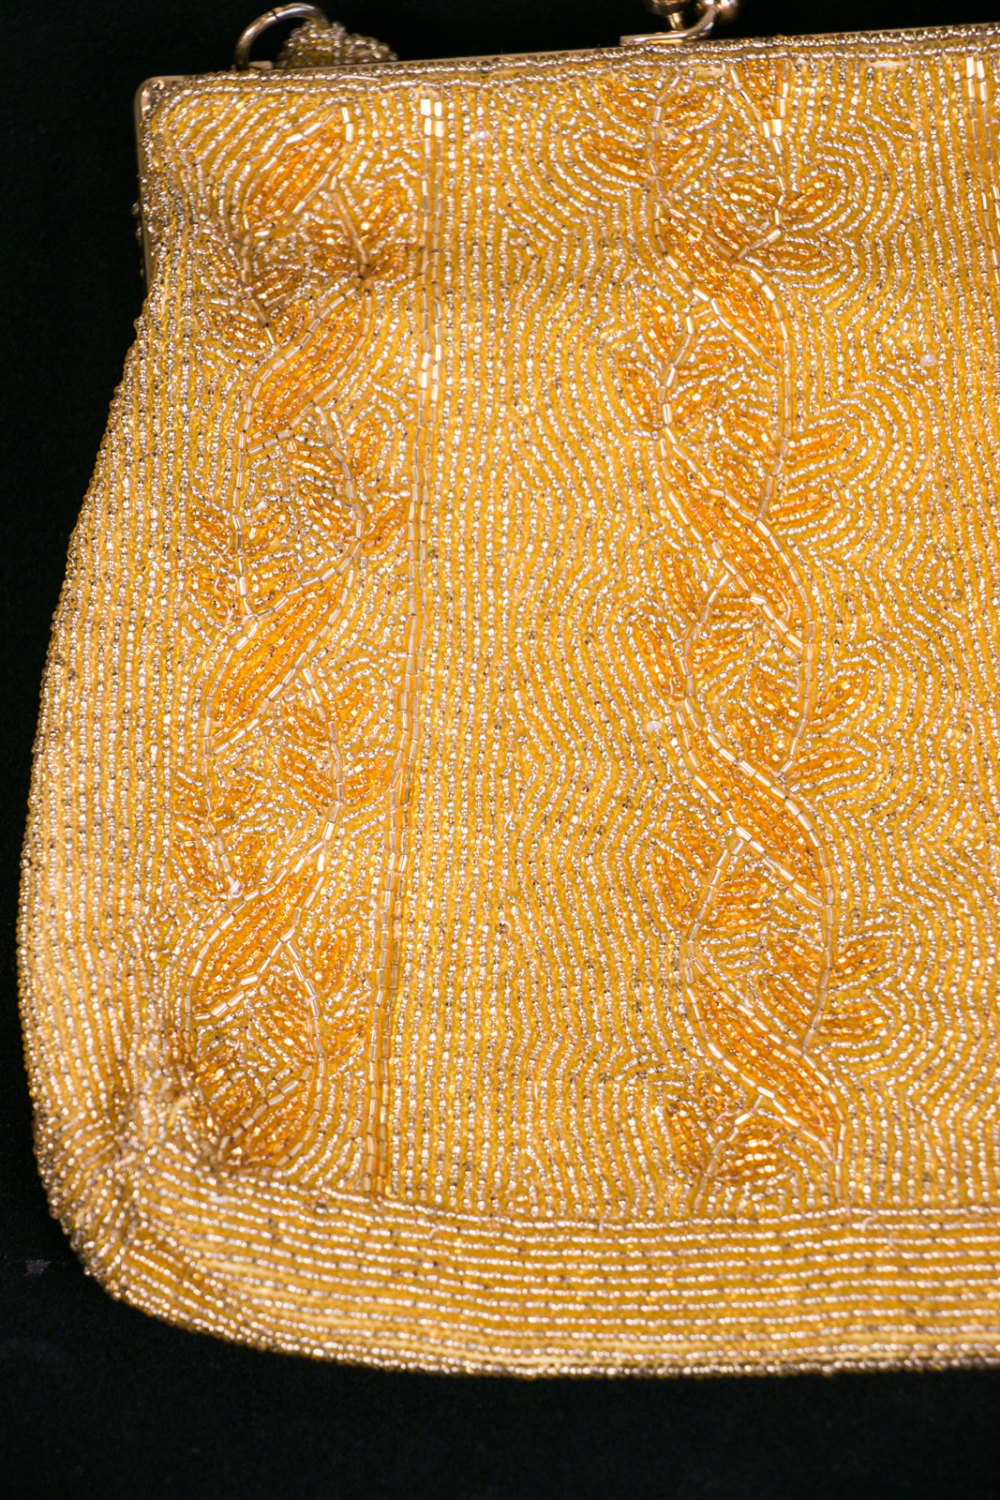 Vintage Gold Belgian Beaded Evening Bag / Purse - 1950's-1960's - with original Mirror, NOS, New Old Stock, Deadstock.